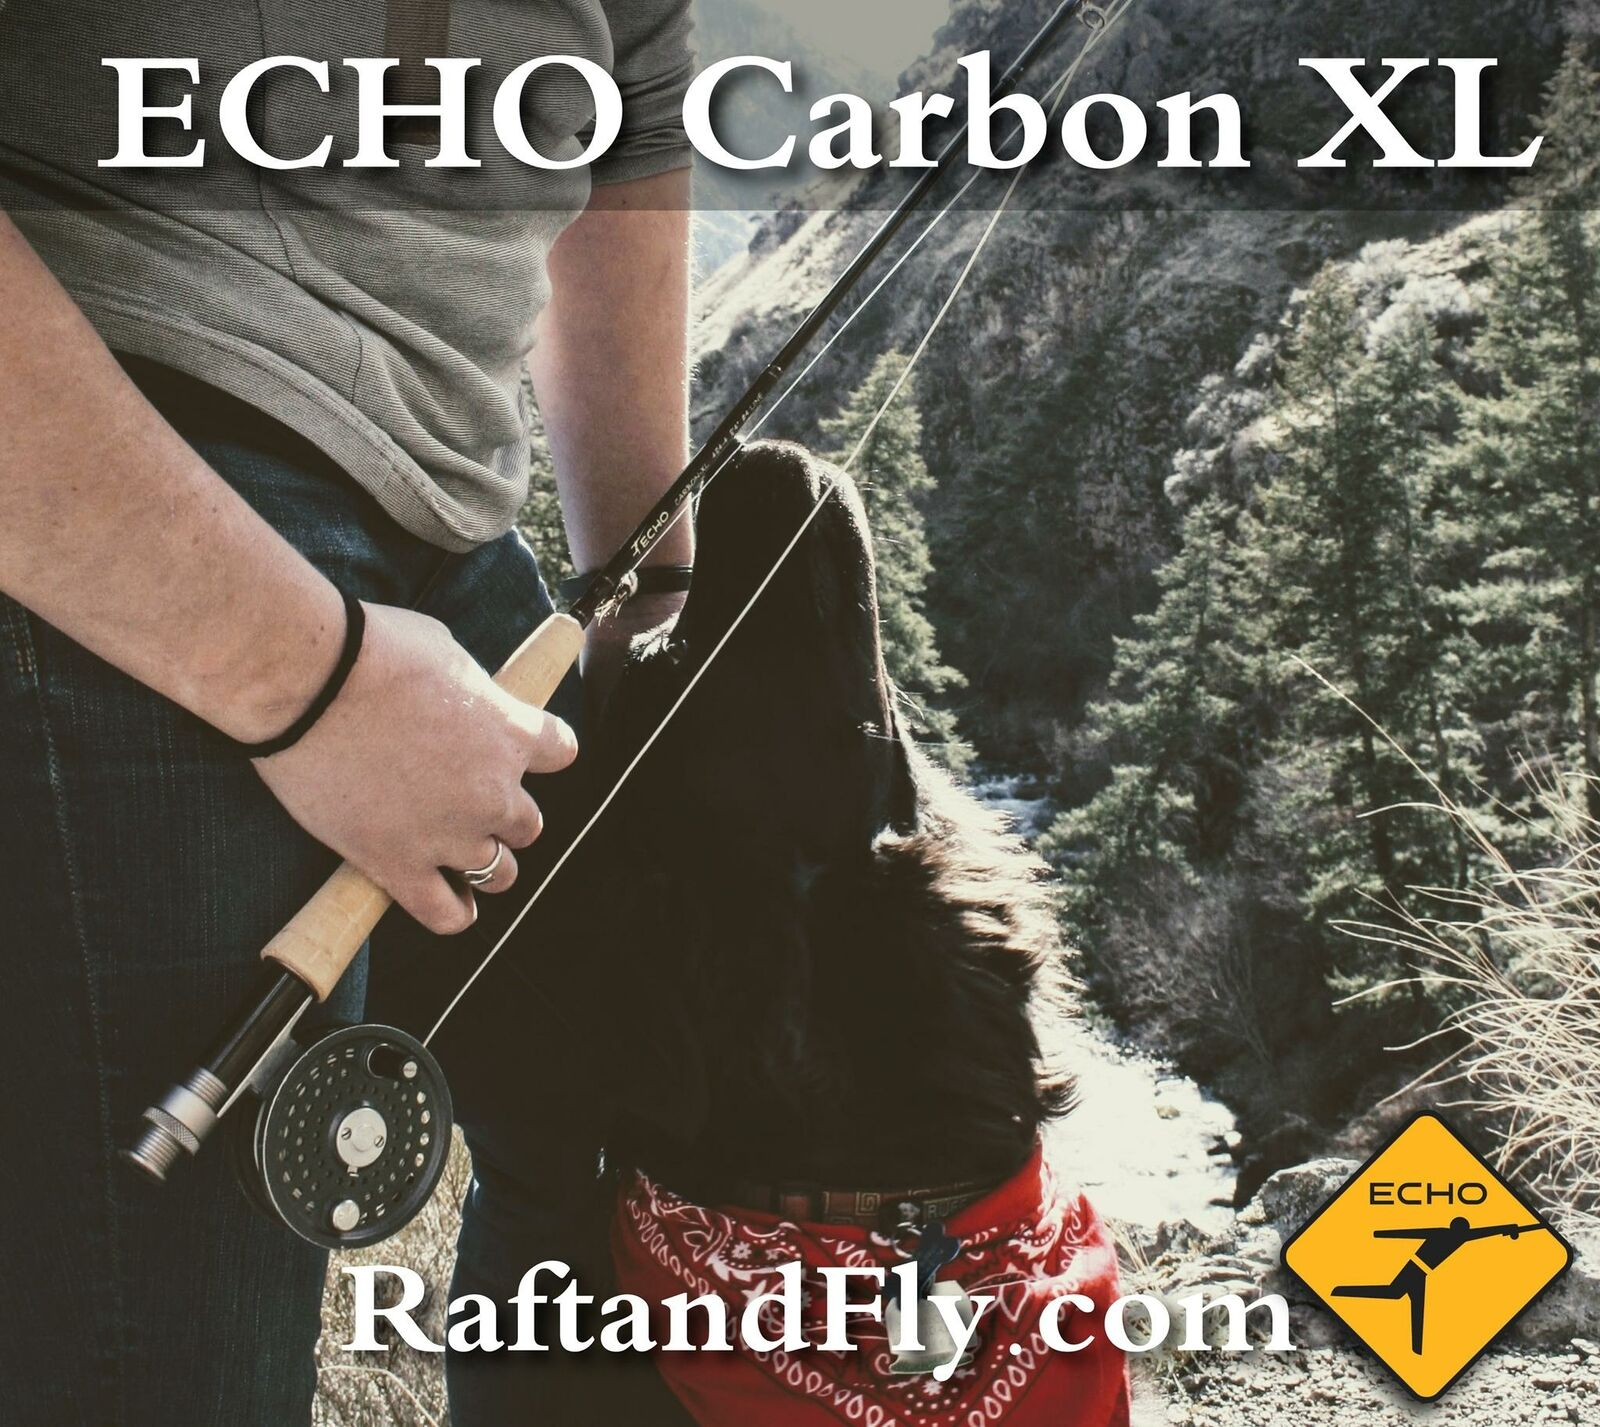 Echo Carbon XL 3wt 7'6  Fly Rod - Lifetime Warranty - Free Shipping